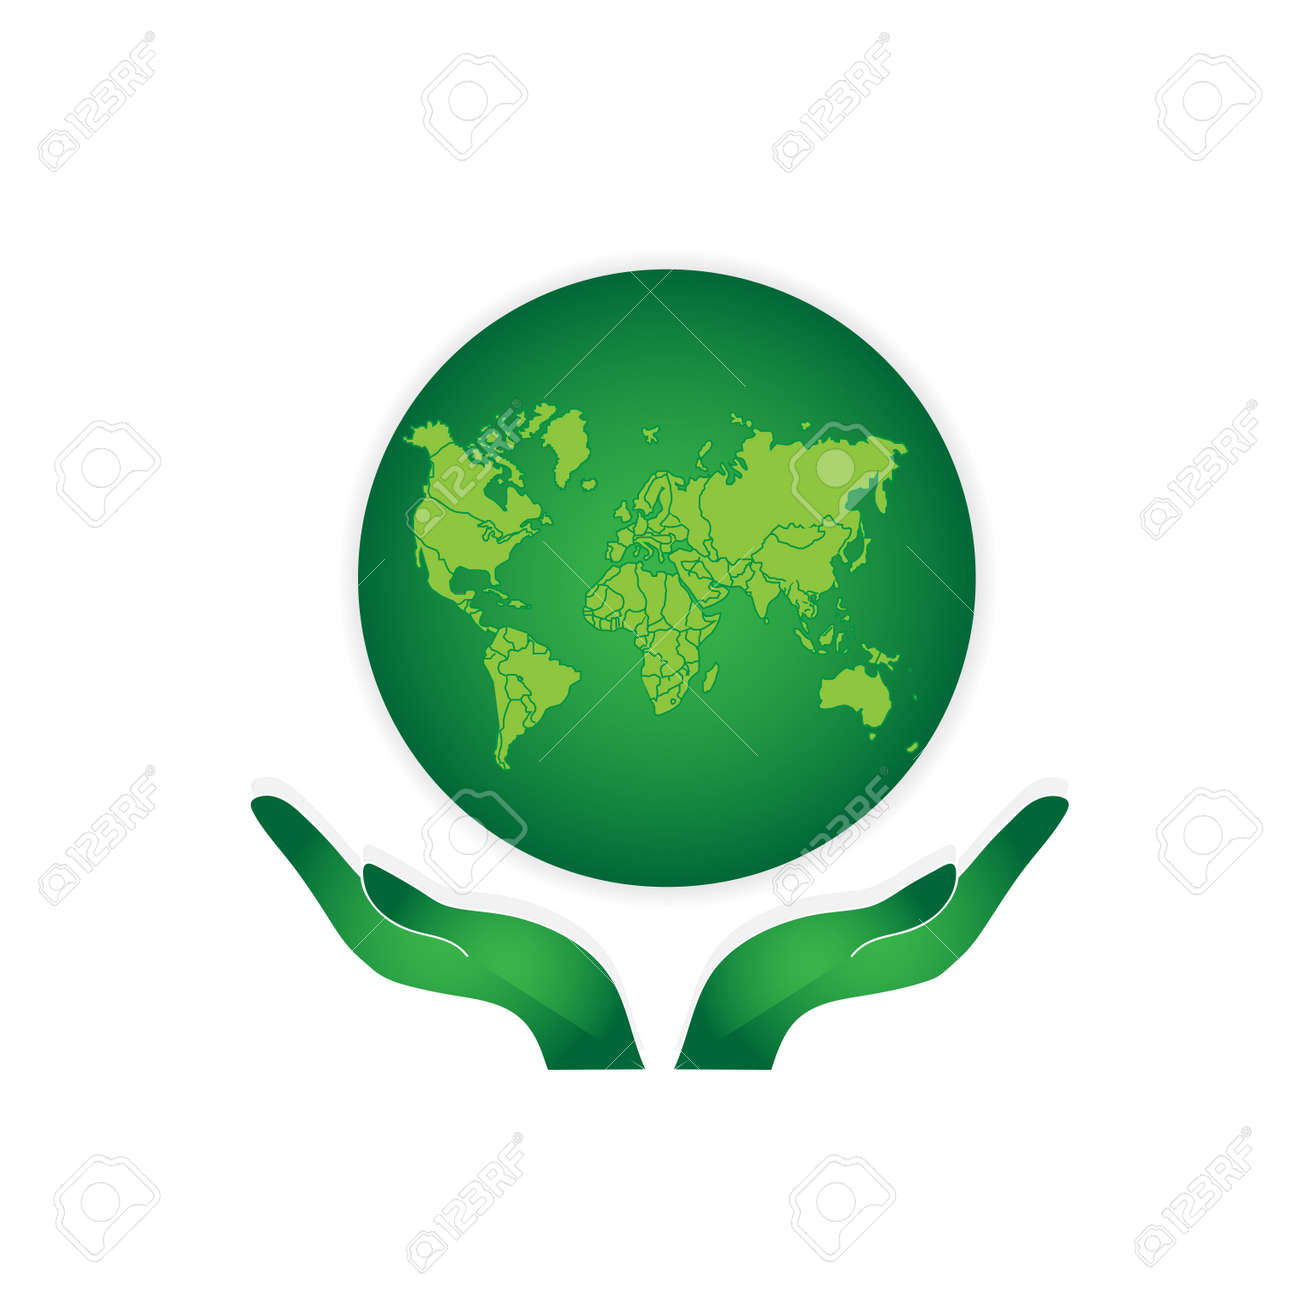 Hands Holding The Green Earth Globe Vector Royalty Free Cliparts